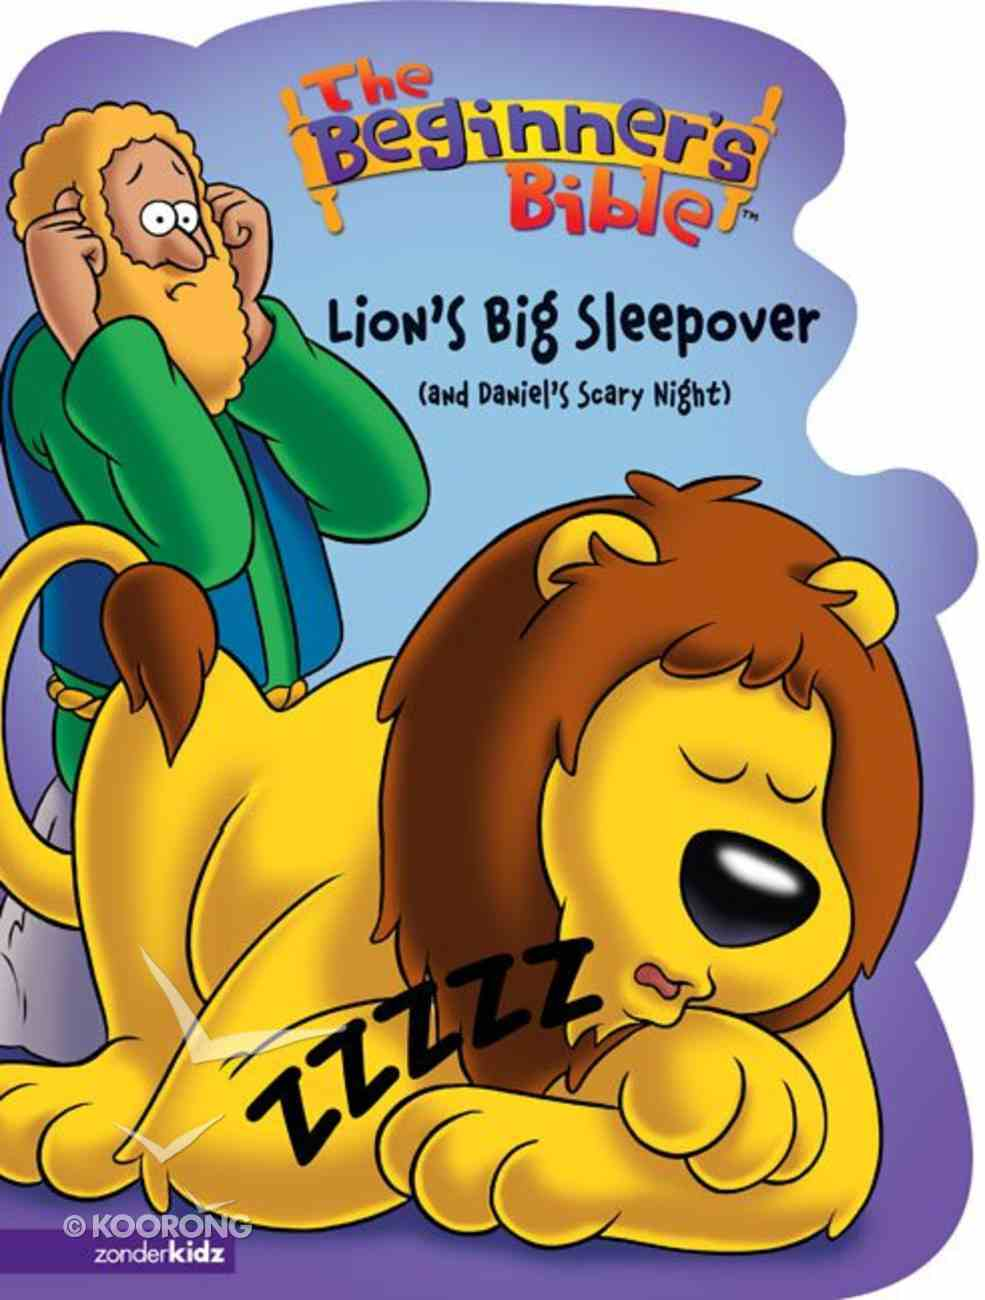 The Lion's Big Sleepover  (And Daniel's Scary Night) (Beginner's Bible Series) Board Book